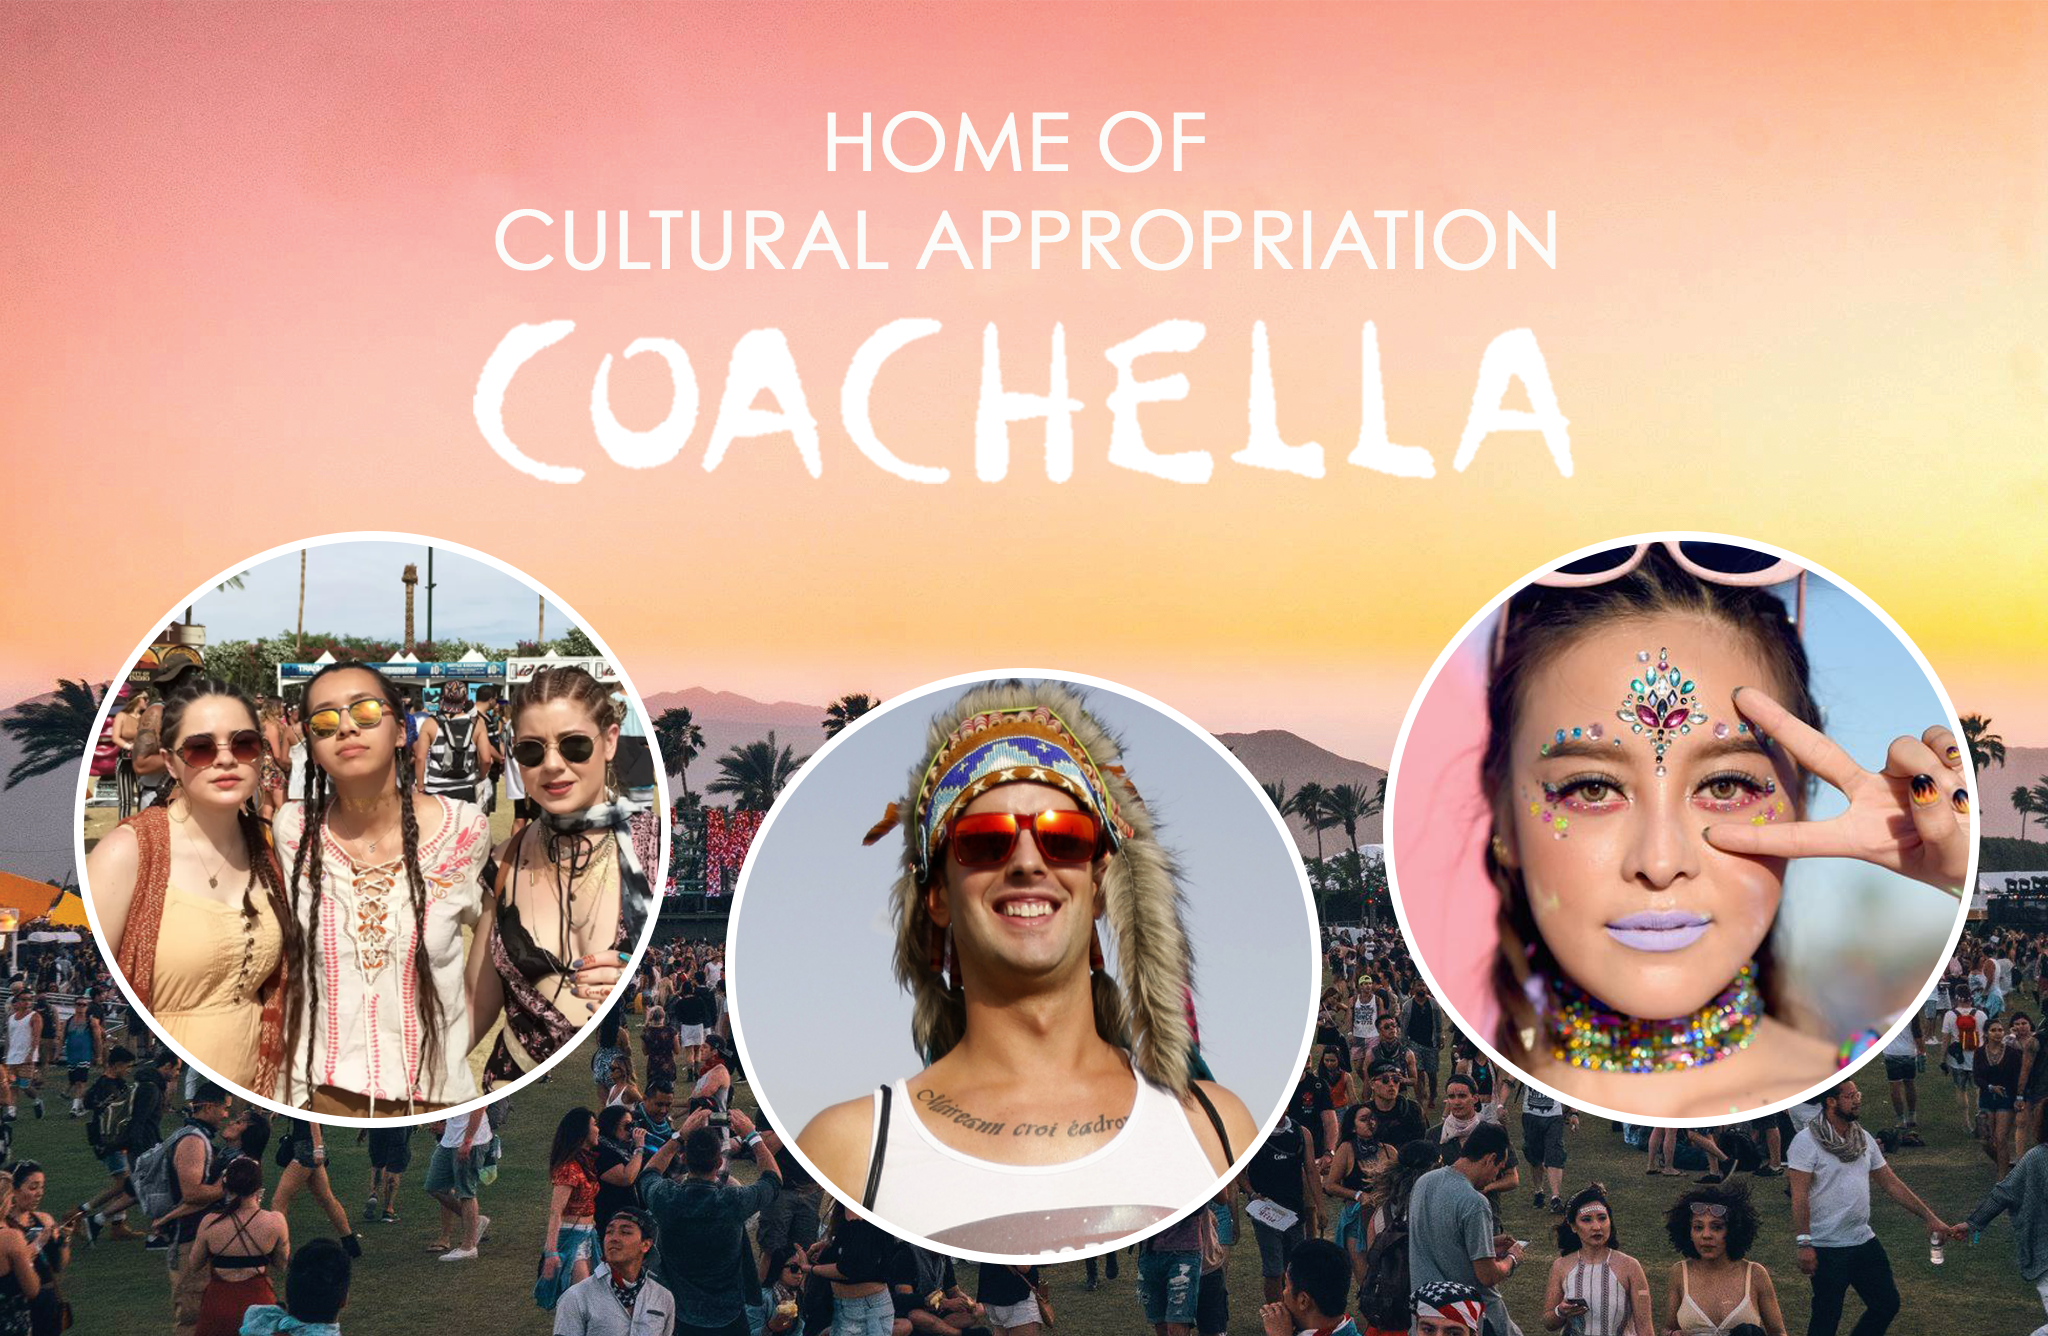 Coachella, the time where everyone thinks cultural